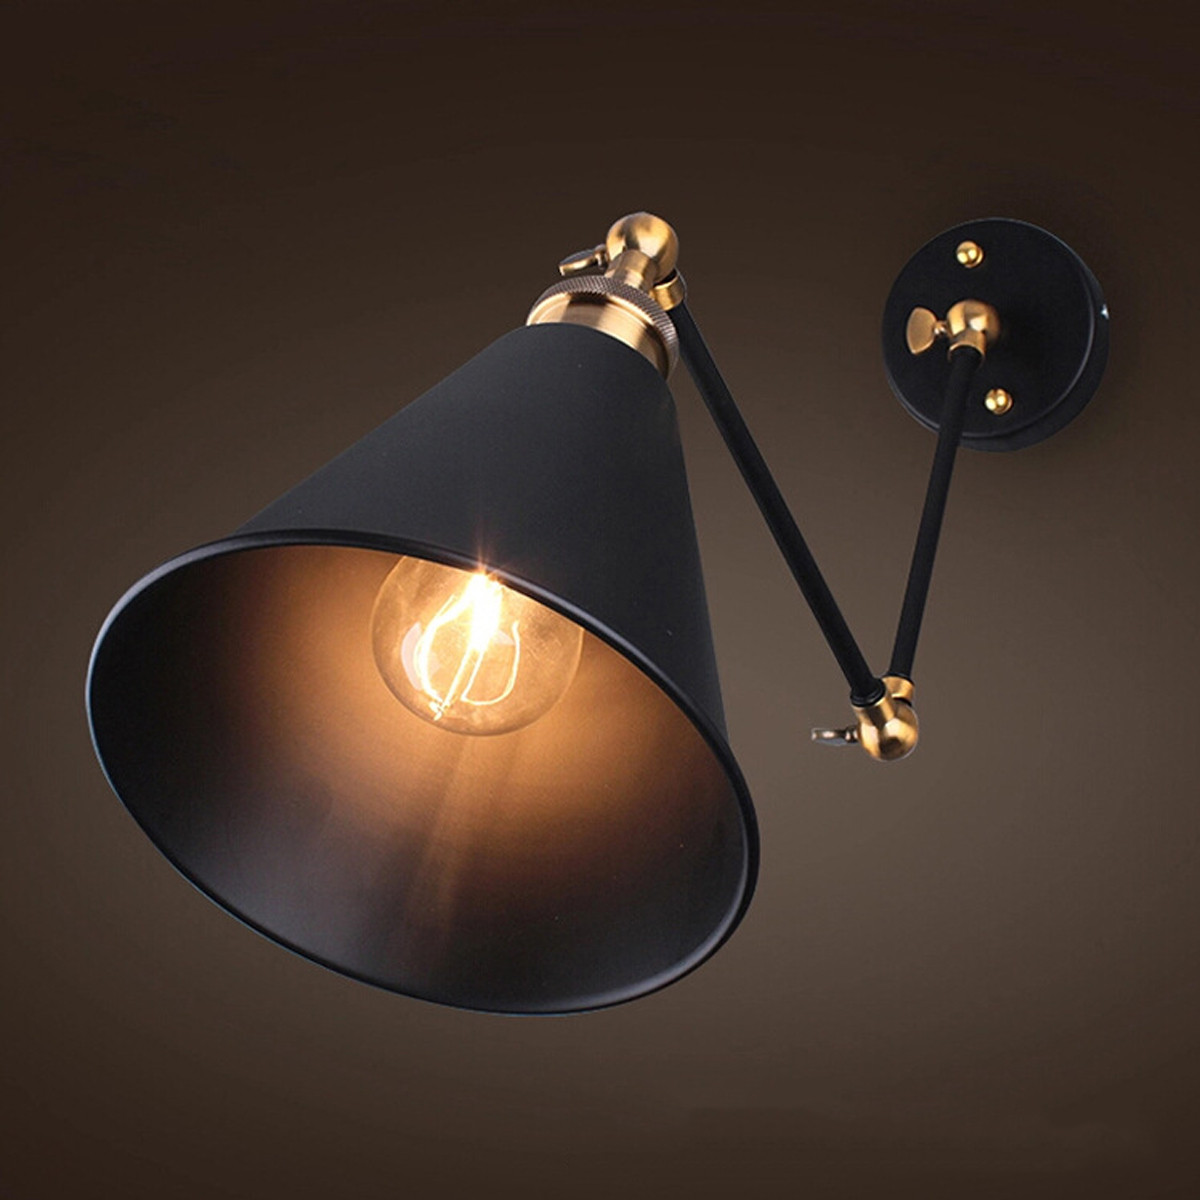 (No Fix) 270° Vintage Retro Industrial Swing Arm Sconce Wall Light Loft Lamp Metal Lampshade Fixture Fitting DIY